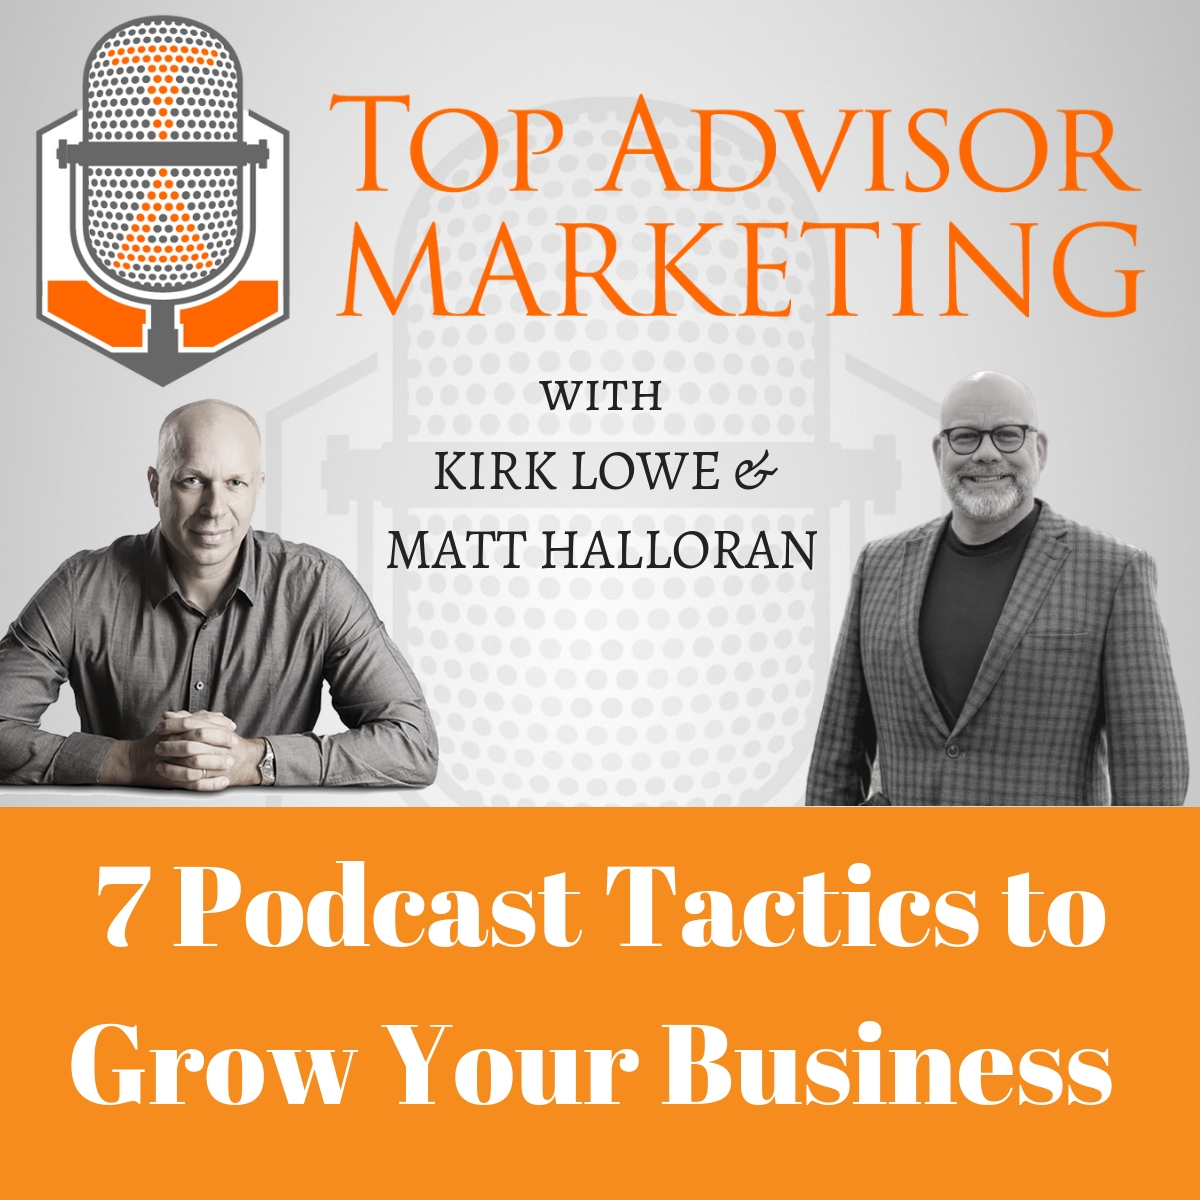 Episode 162 - 7 Podcast Tactics to Grow Your Business